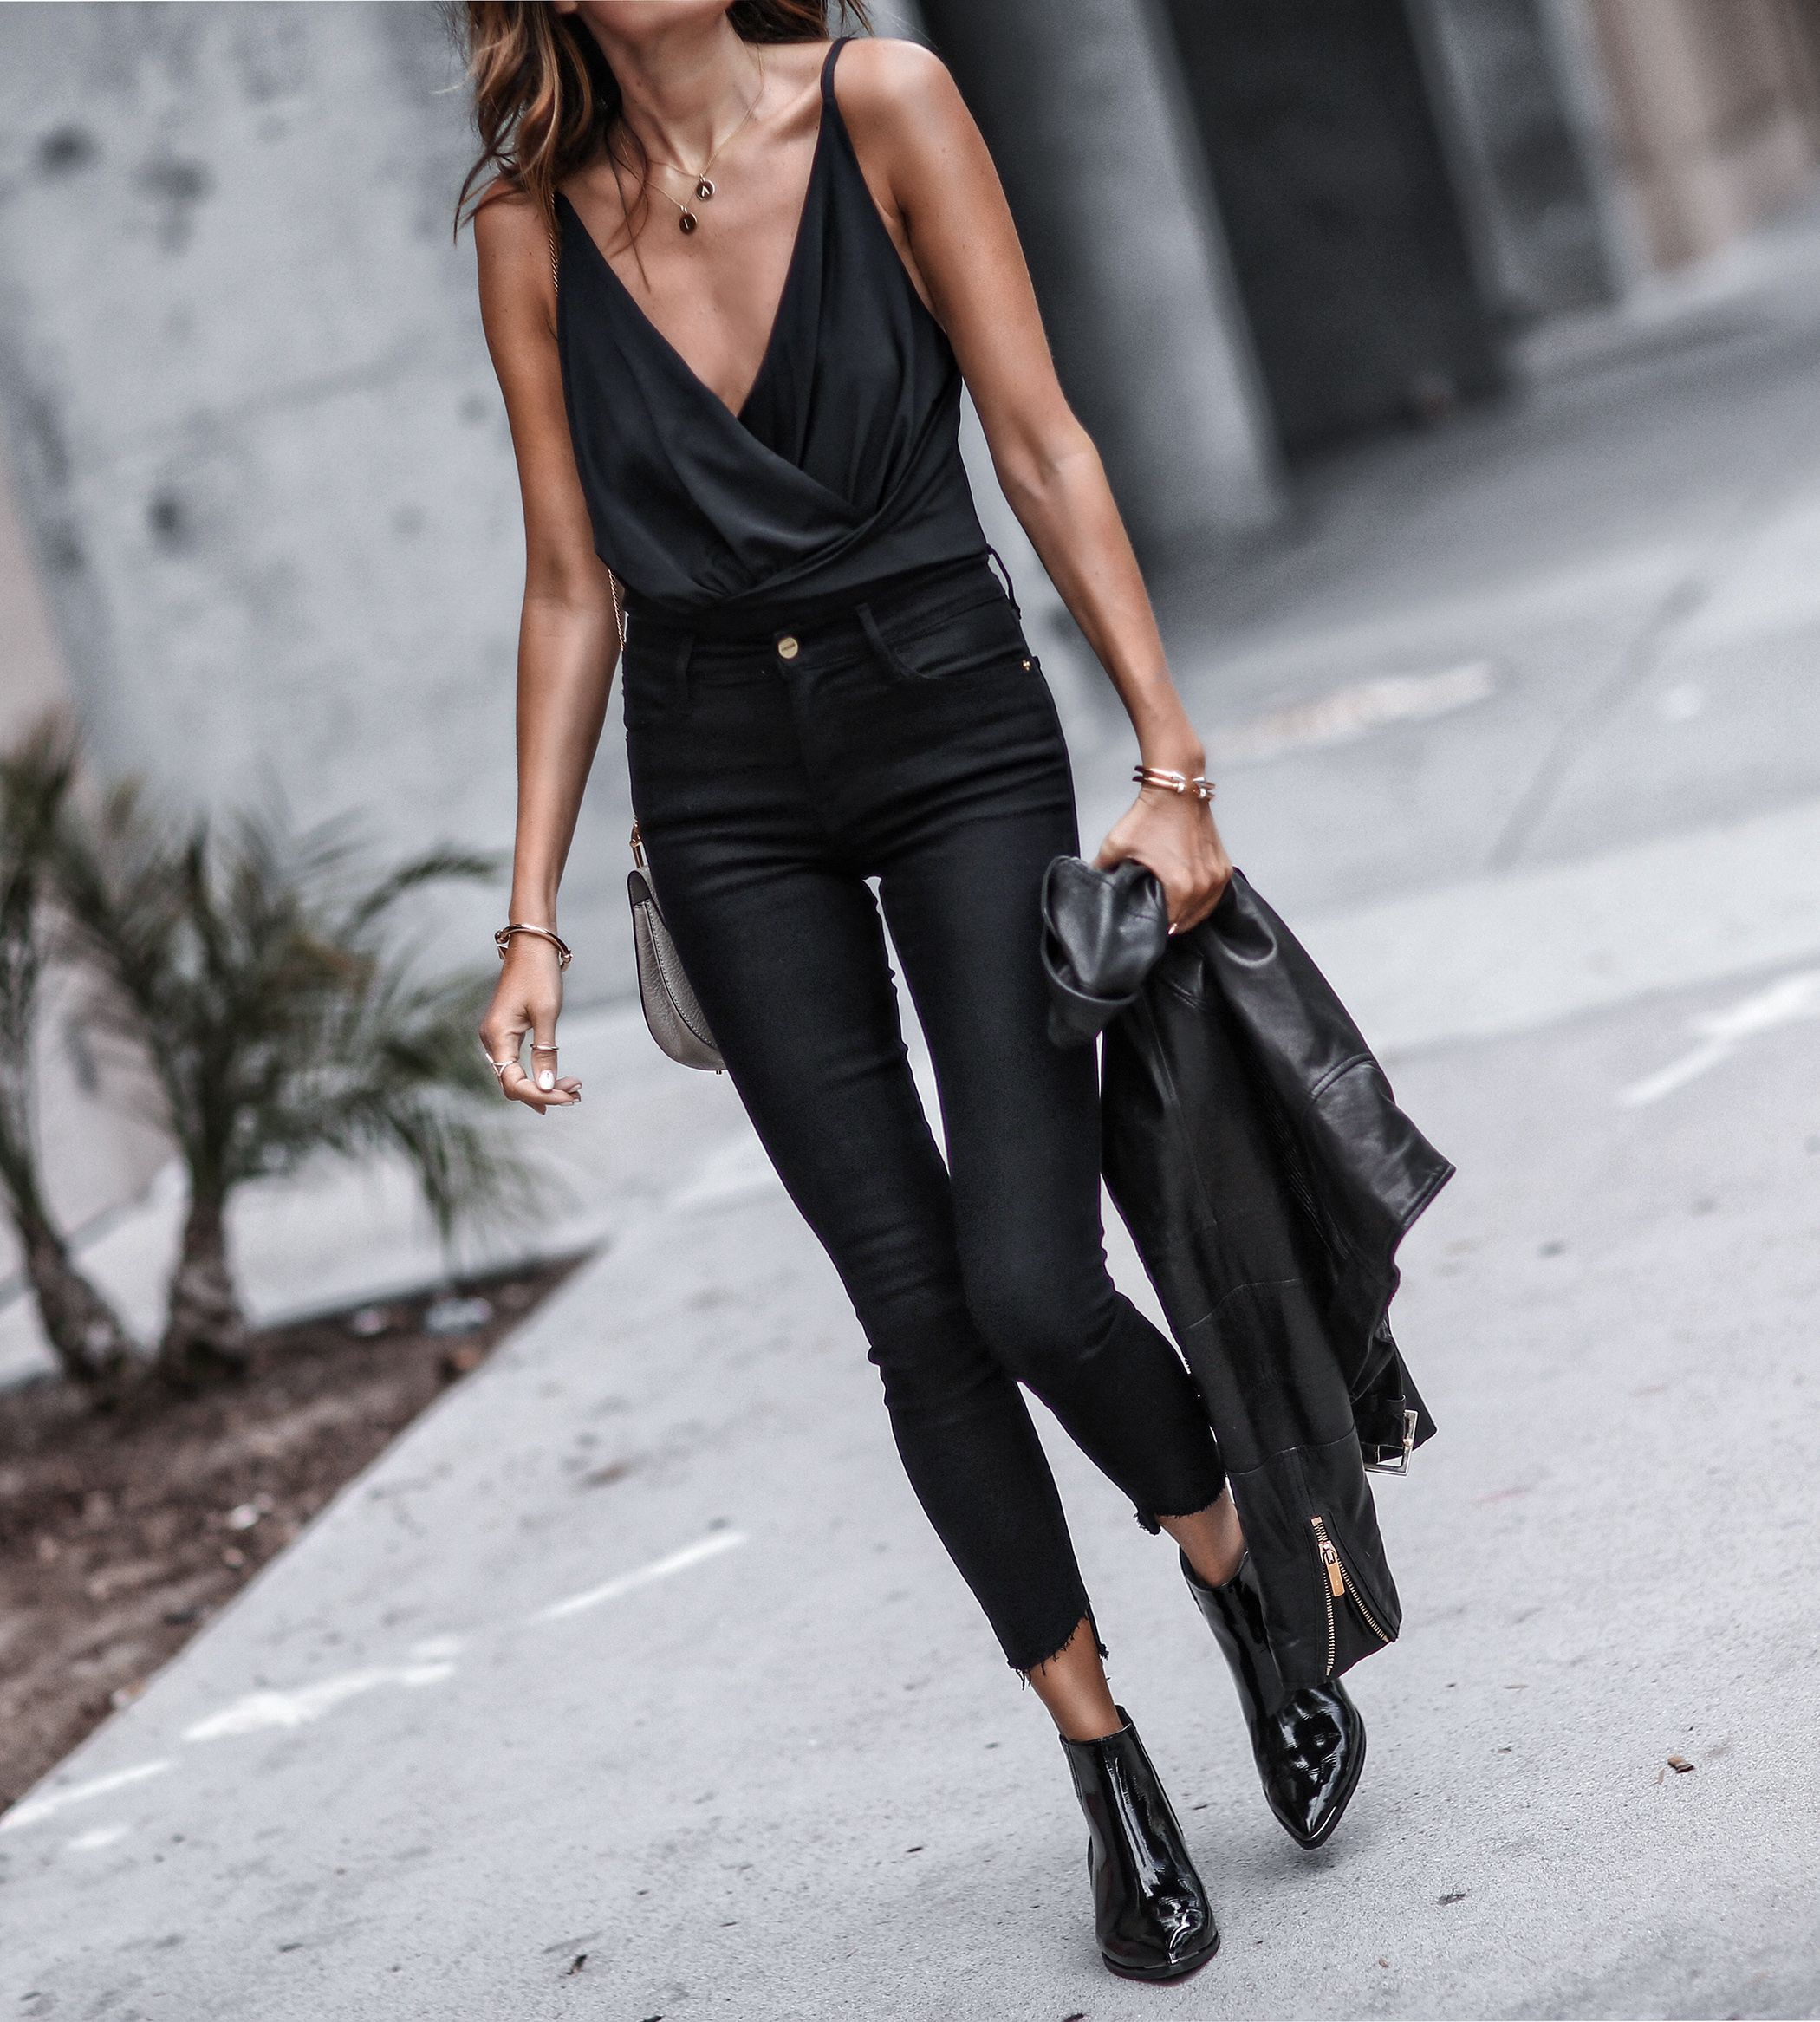 Black patent leather booties outfit